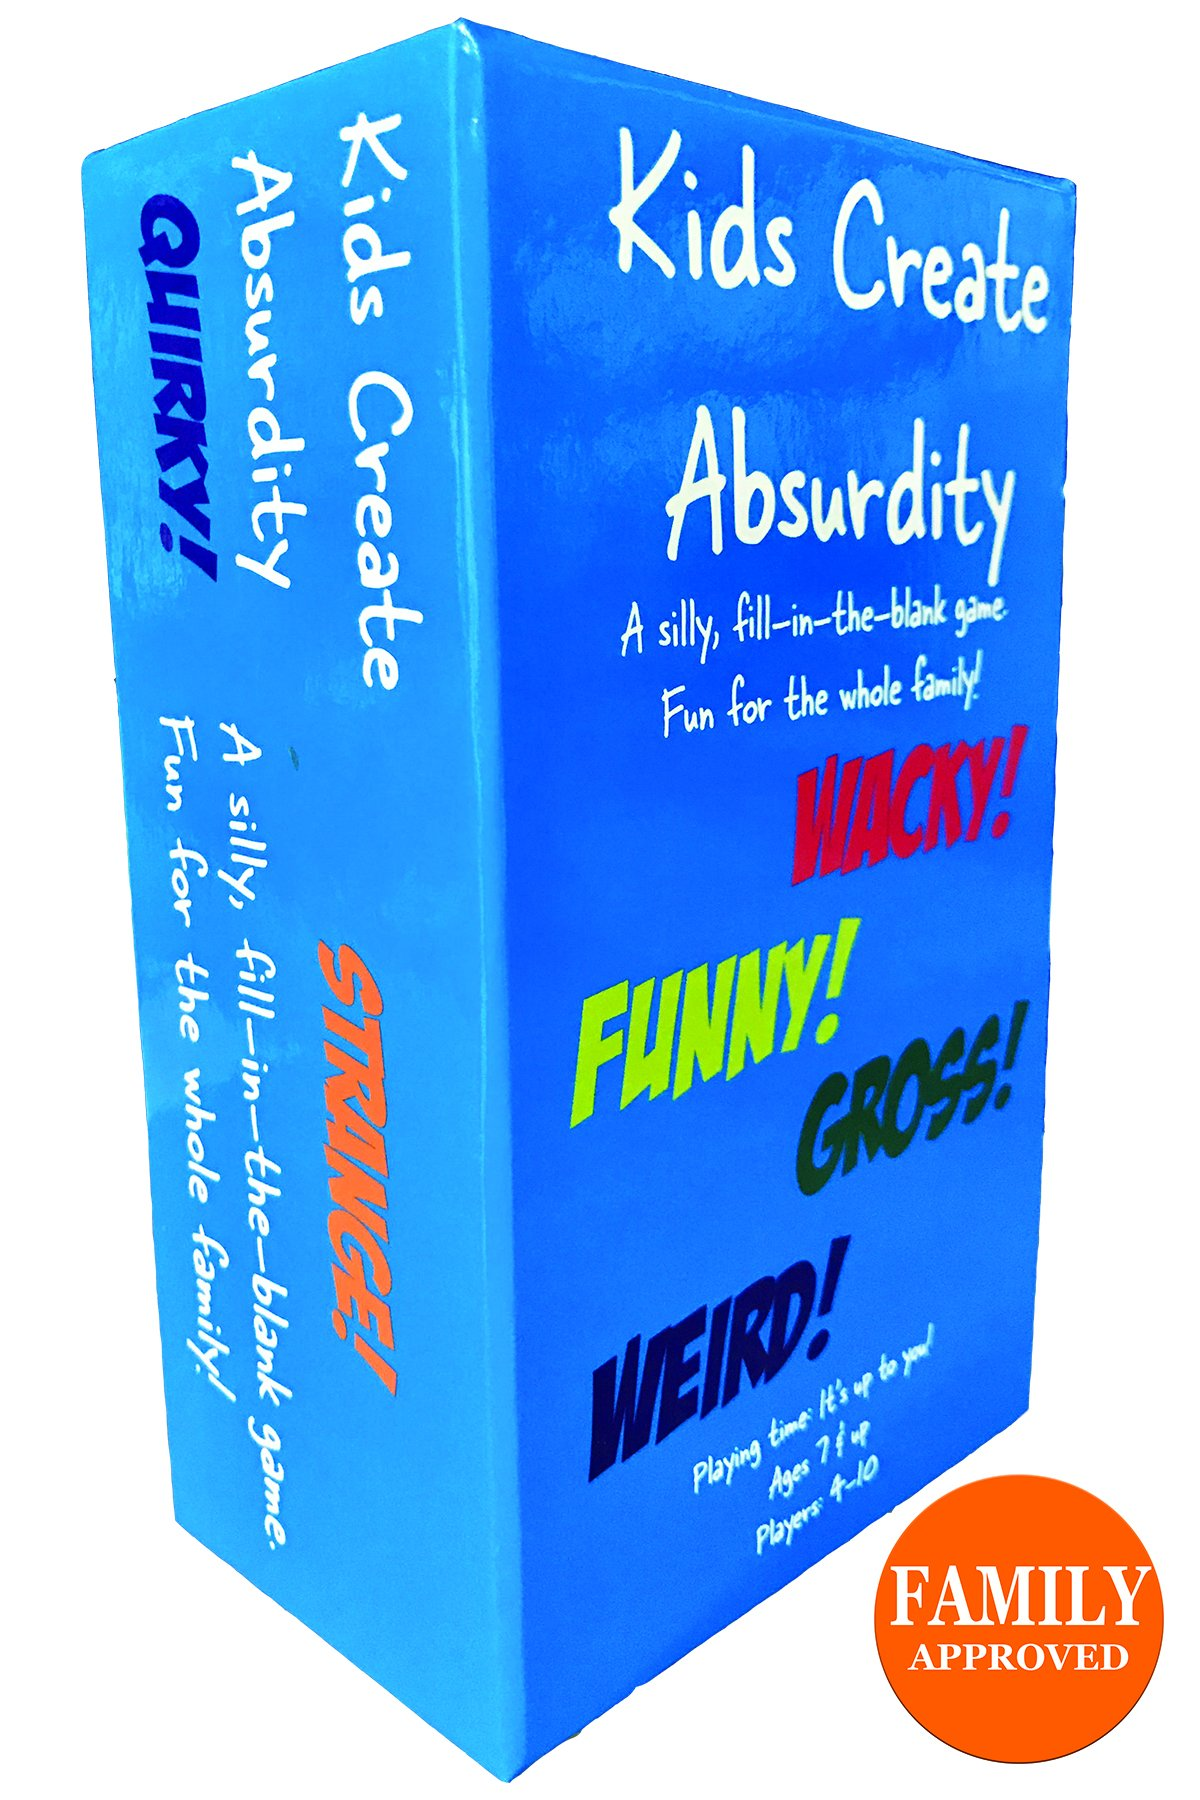 Kids Create Absurdity-A Silly Fun Family Card Game- Laugh Giggle Card Game For Kids, Adults, Teens, Tweens Partys- Family Pack of 465 Quality Playing Cards.